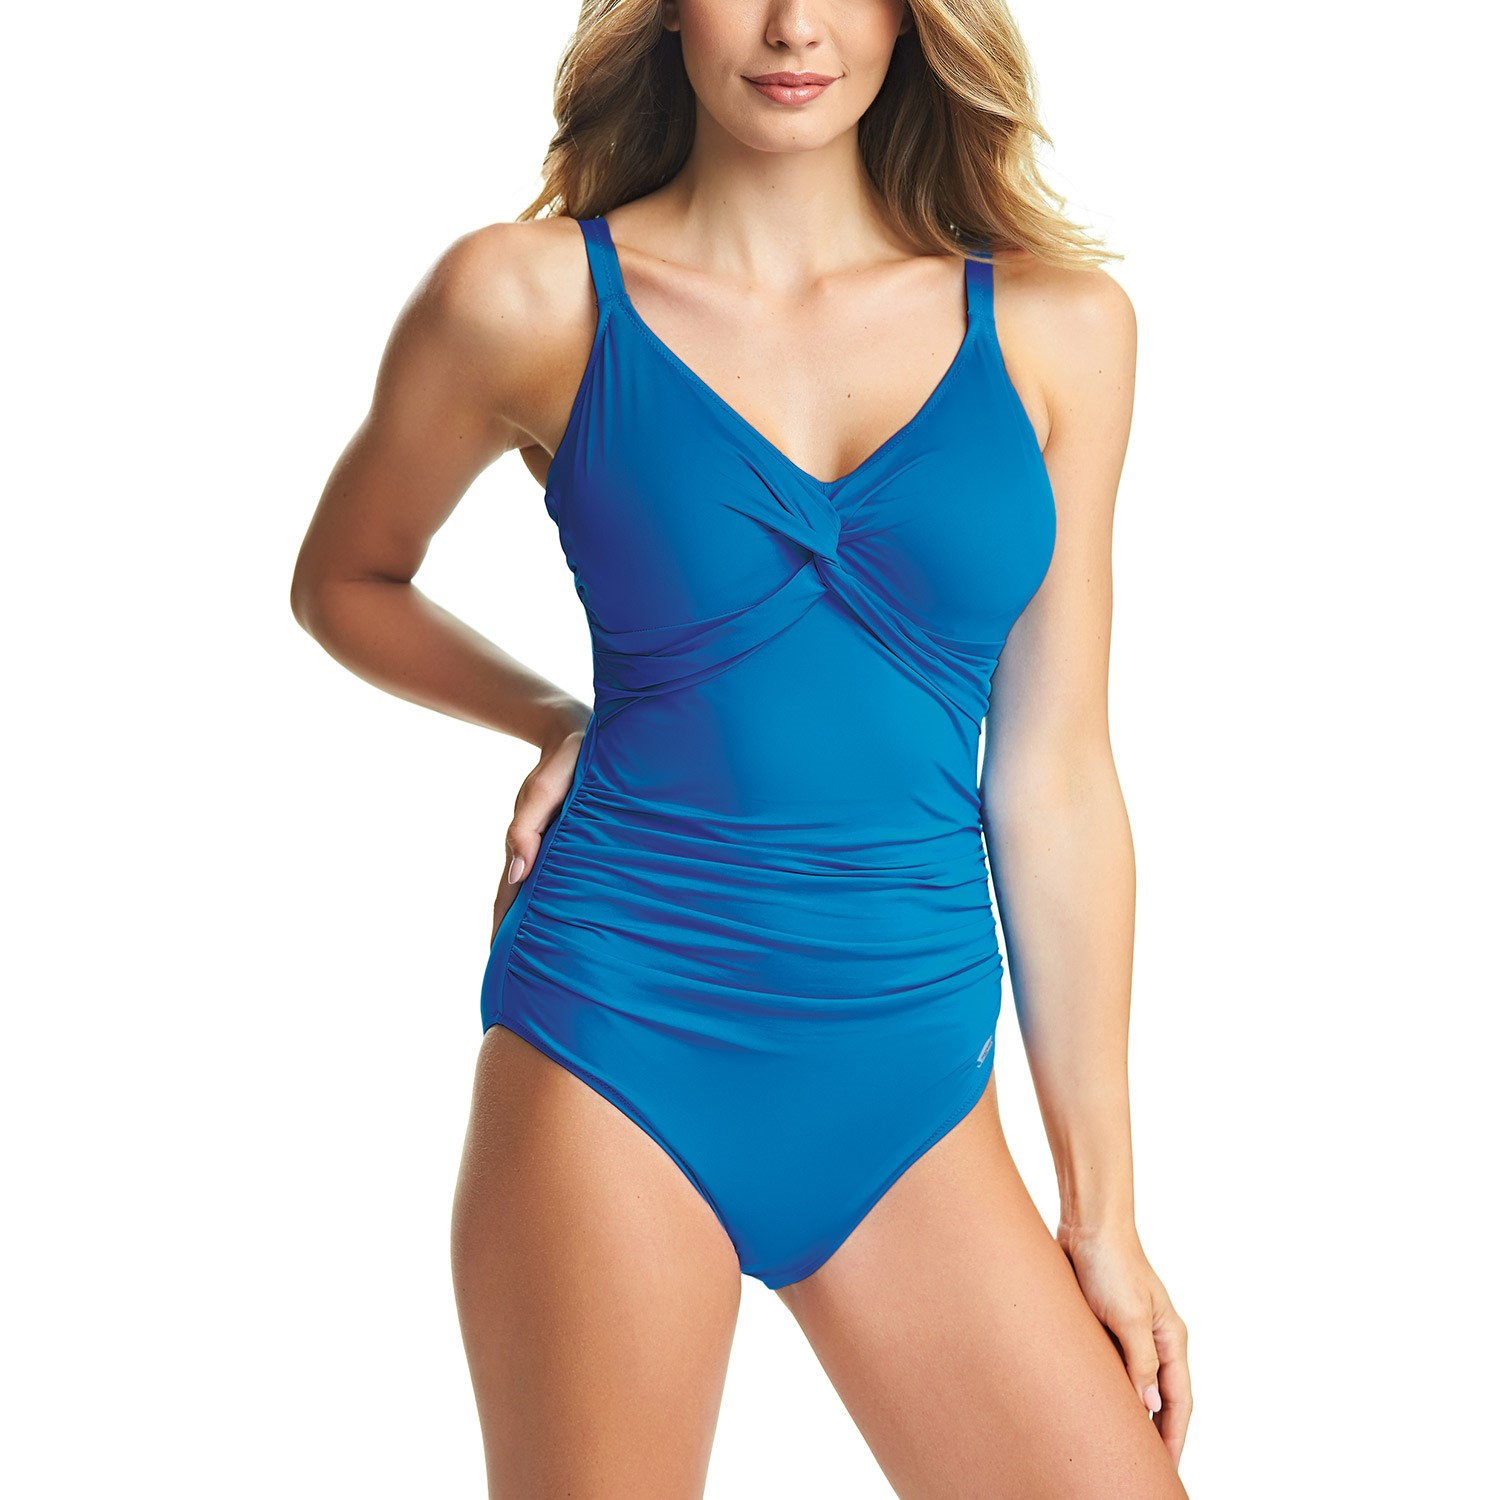 4056c63ac43 Fantasie Versailles Uw Twist Front Control Suit - Swimsuits - Swim ...